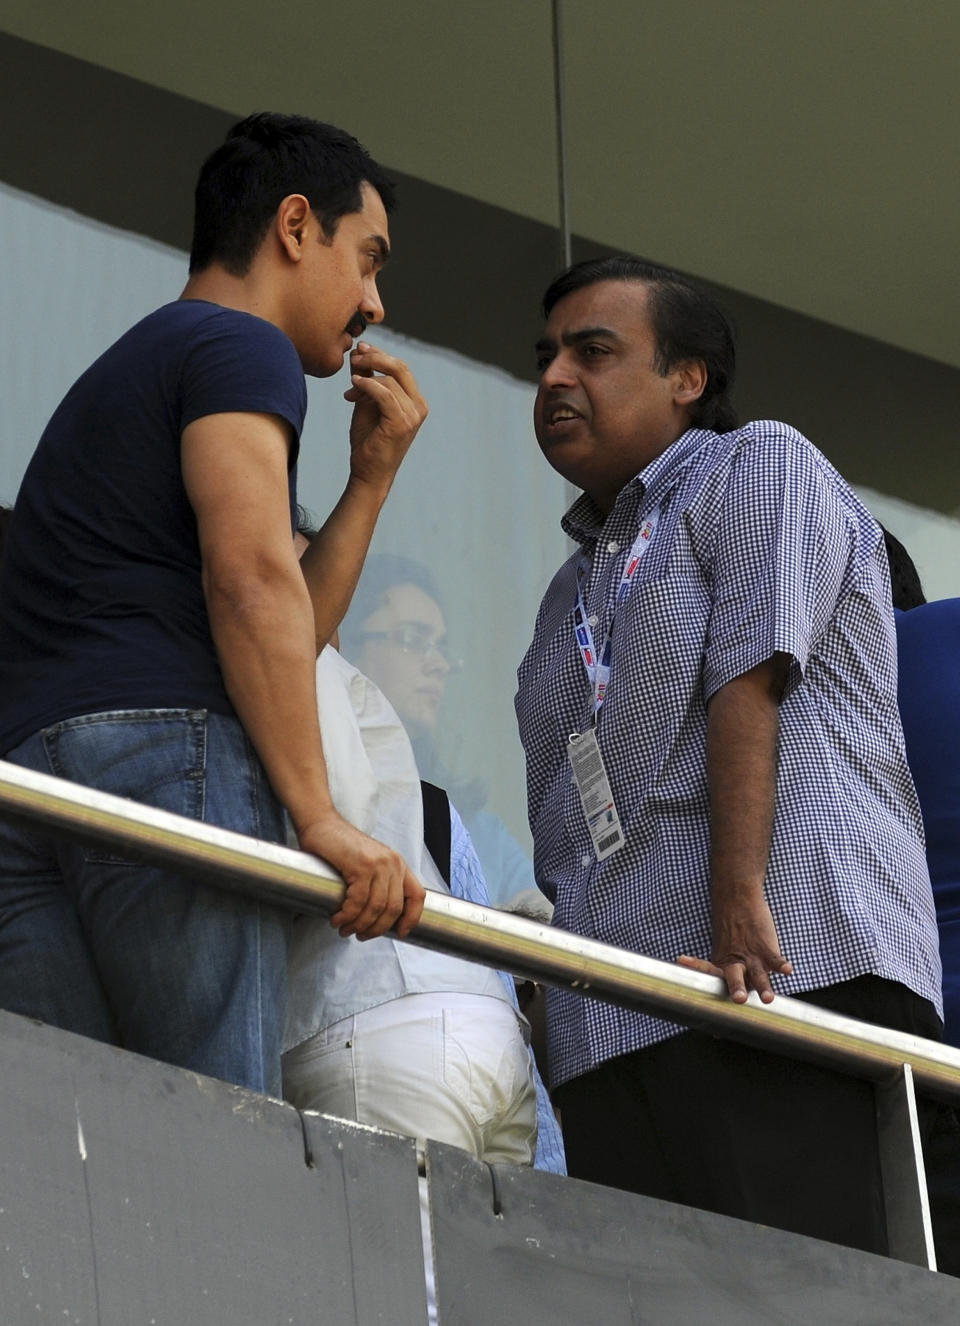 Indian actor Aamir Khan (L) and industrialist Mukesh Ambani interact in the stands during the ICC Cricket World Cup final between India and Sri Lanka at Wankhede Stadium in Mumbai on April 2, 2011. AFP PHOTO/Indranil MUKHERJEE